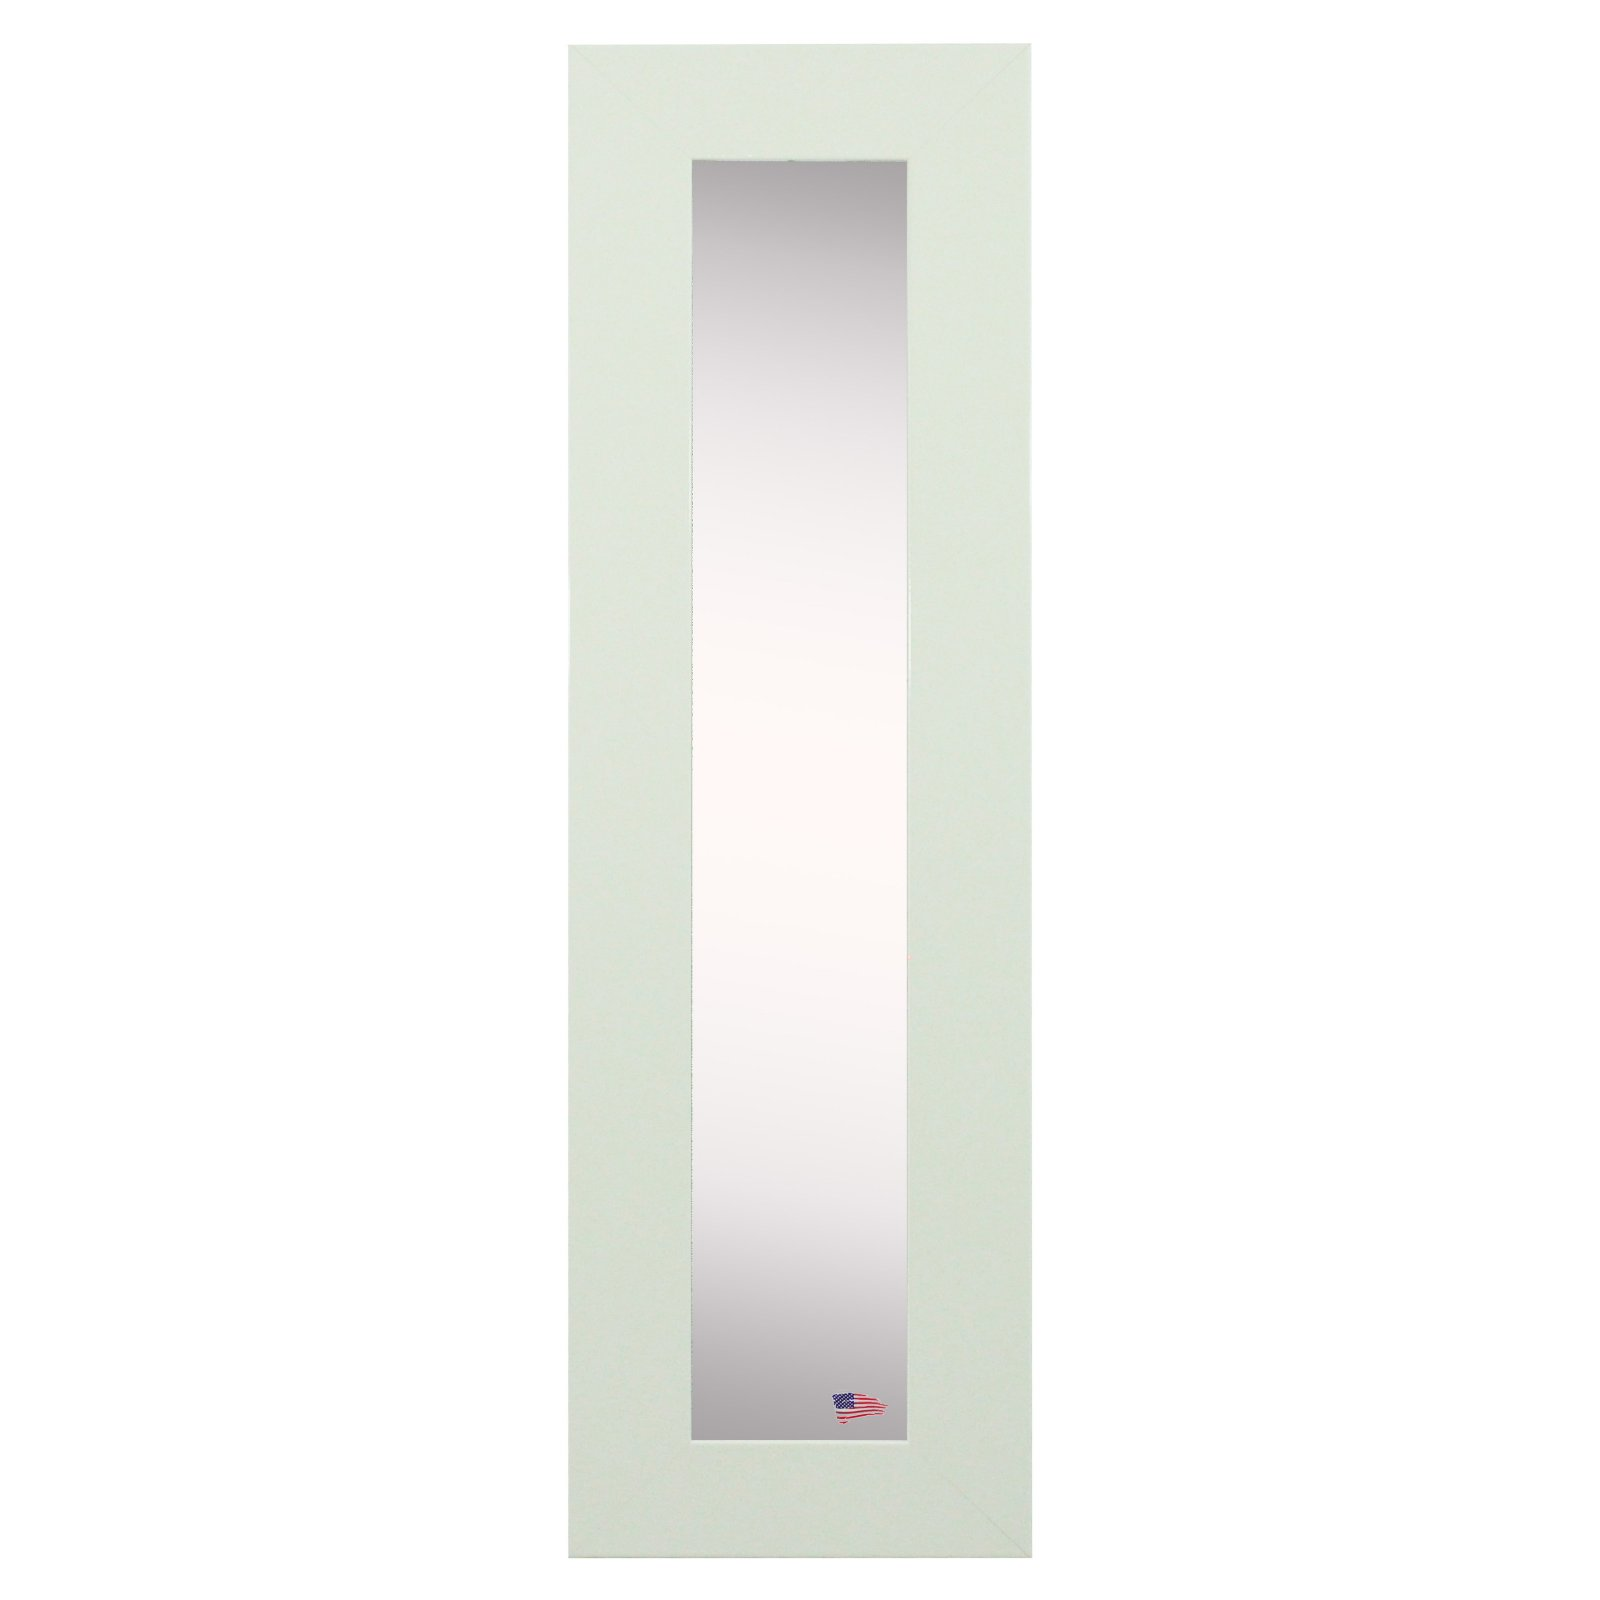 Rayne Mirrors Delta White Panel Wall Mirror Set of 3 by Overstock